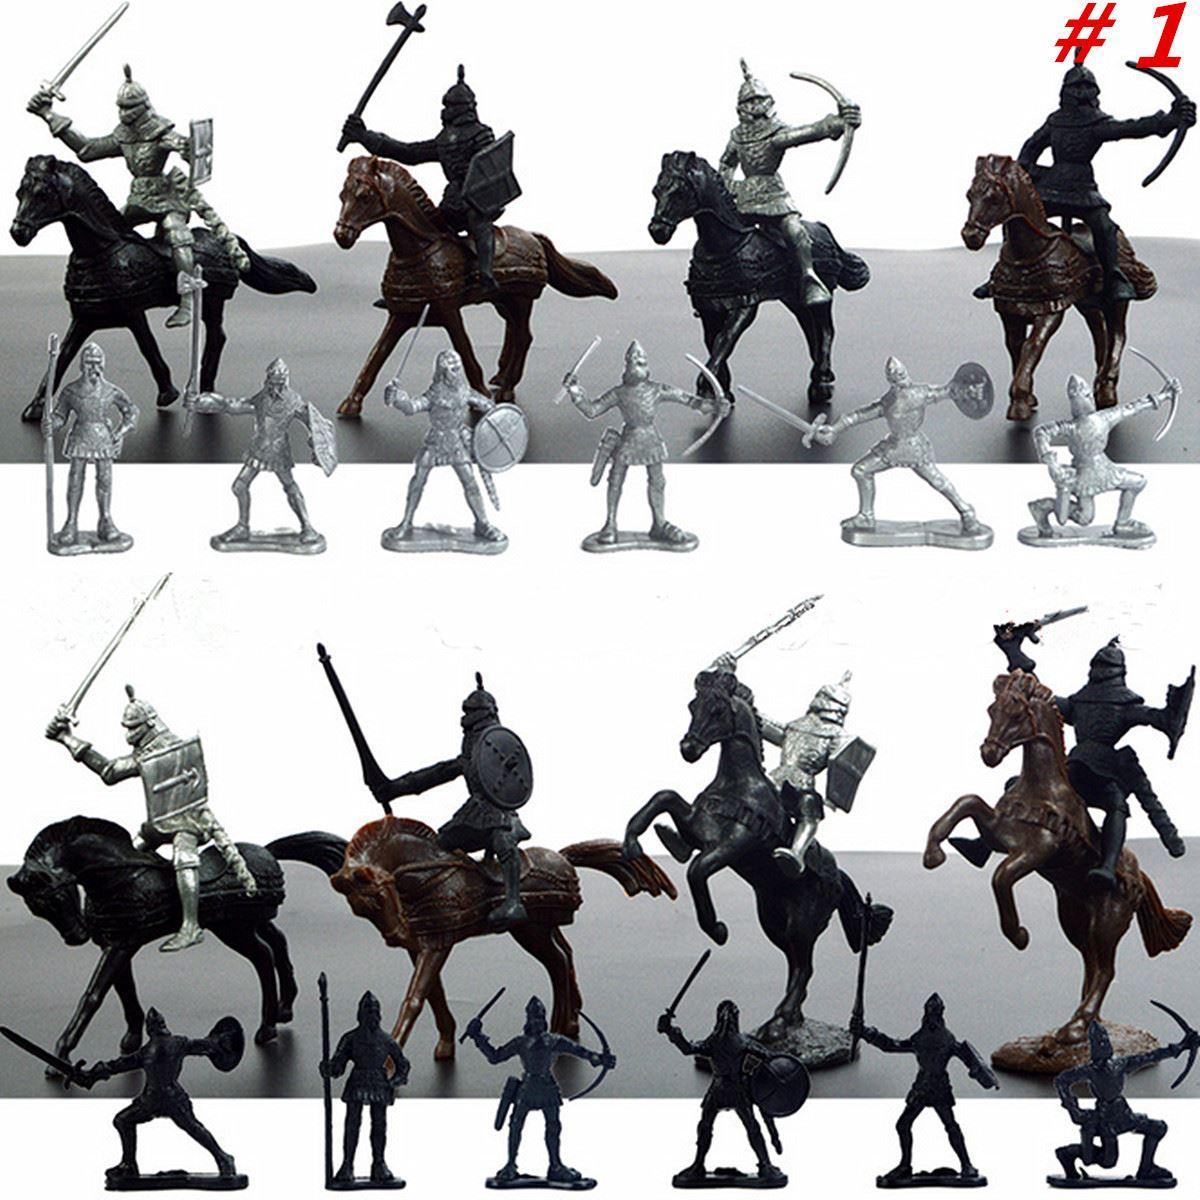 28pcs/set Knights Warrior Horses Medieval Toy Soldiers Figures Playset Mini Model Toys Gift Decor For Children Adult